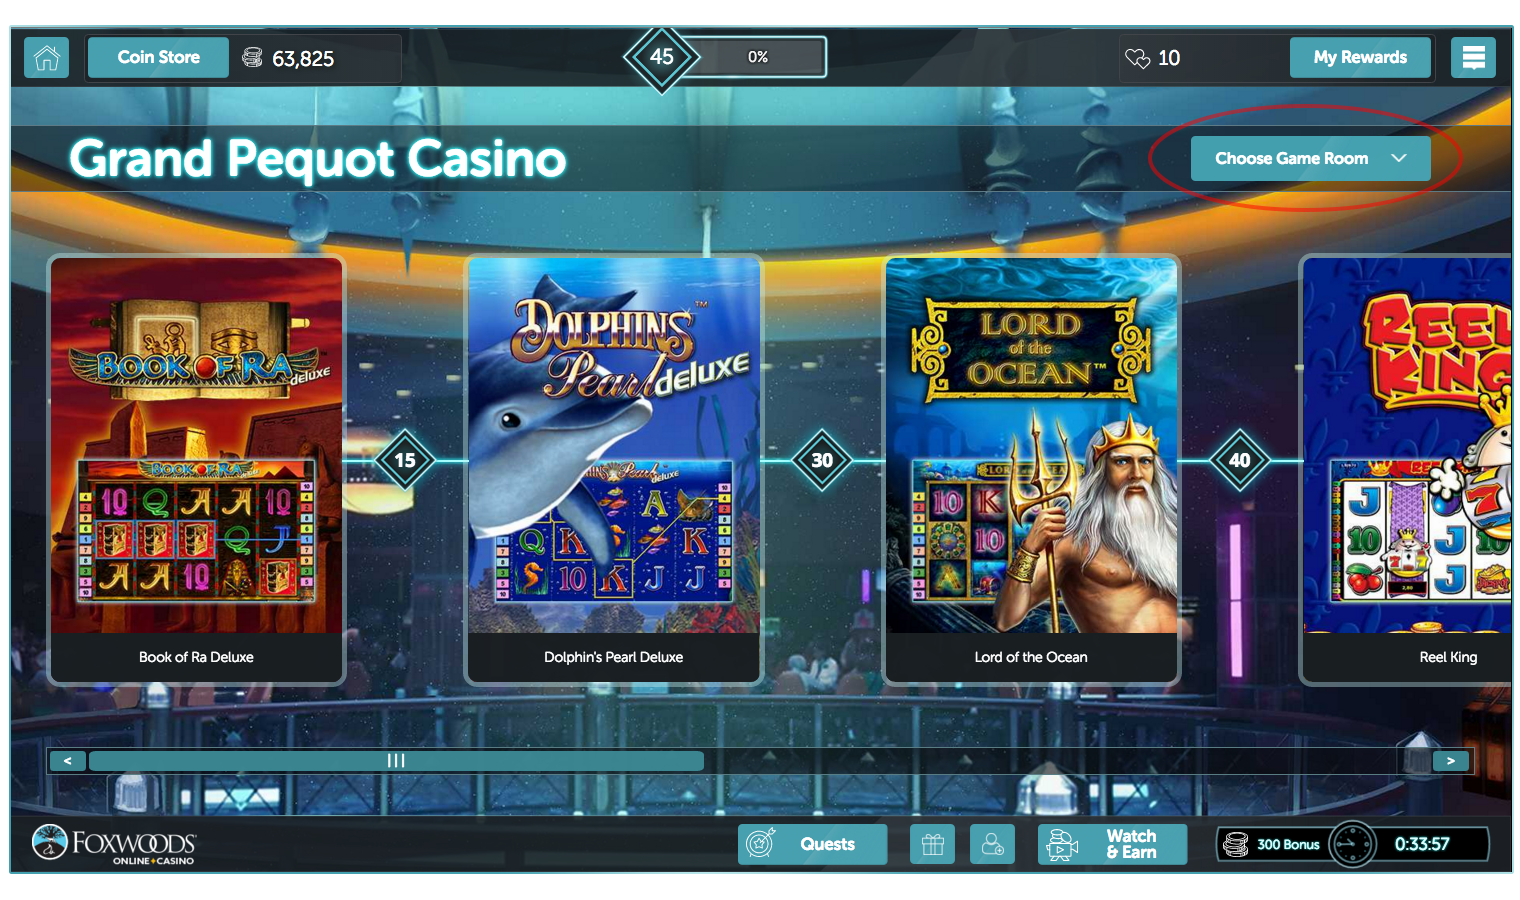 888 Gaming Casinos Online - 2+ 888 Gaming Casino Slot Games FREE